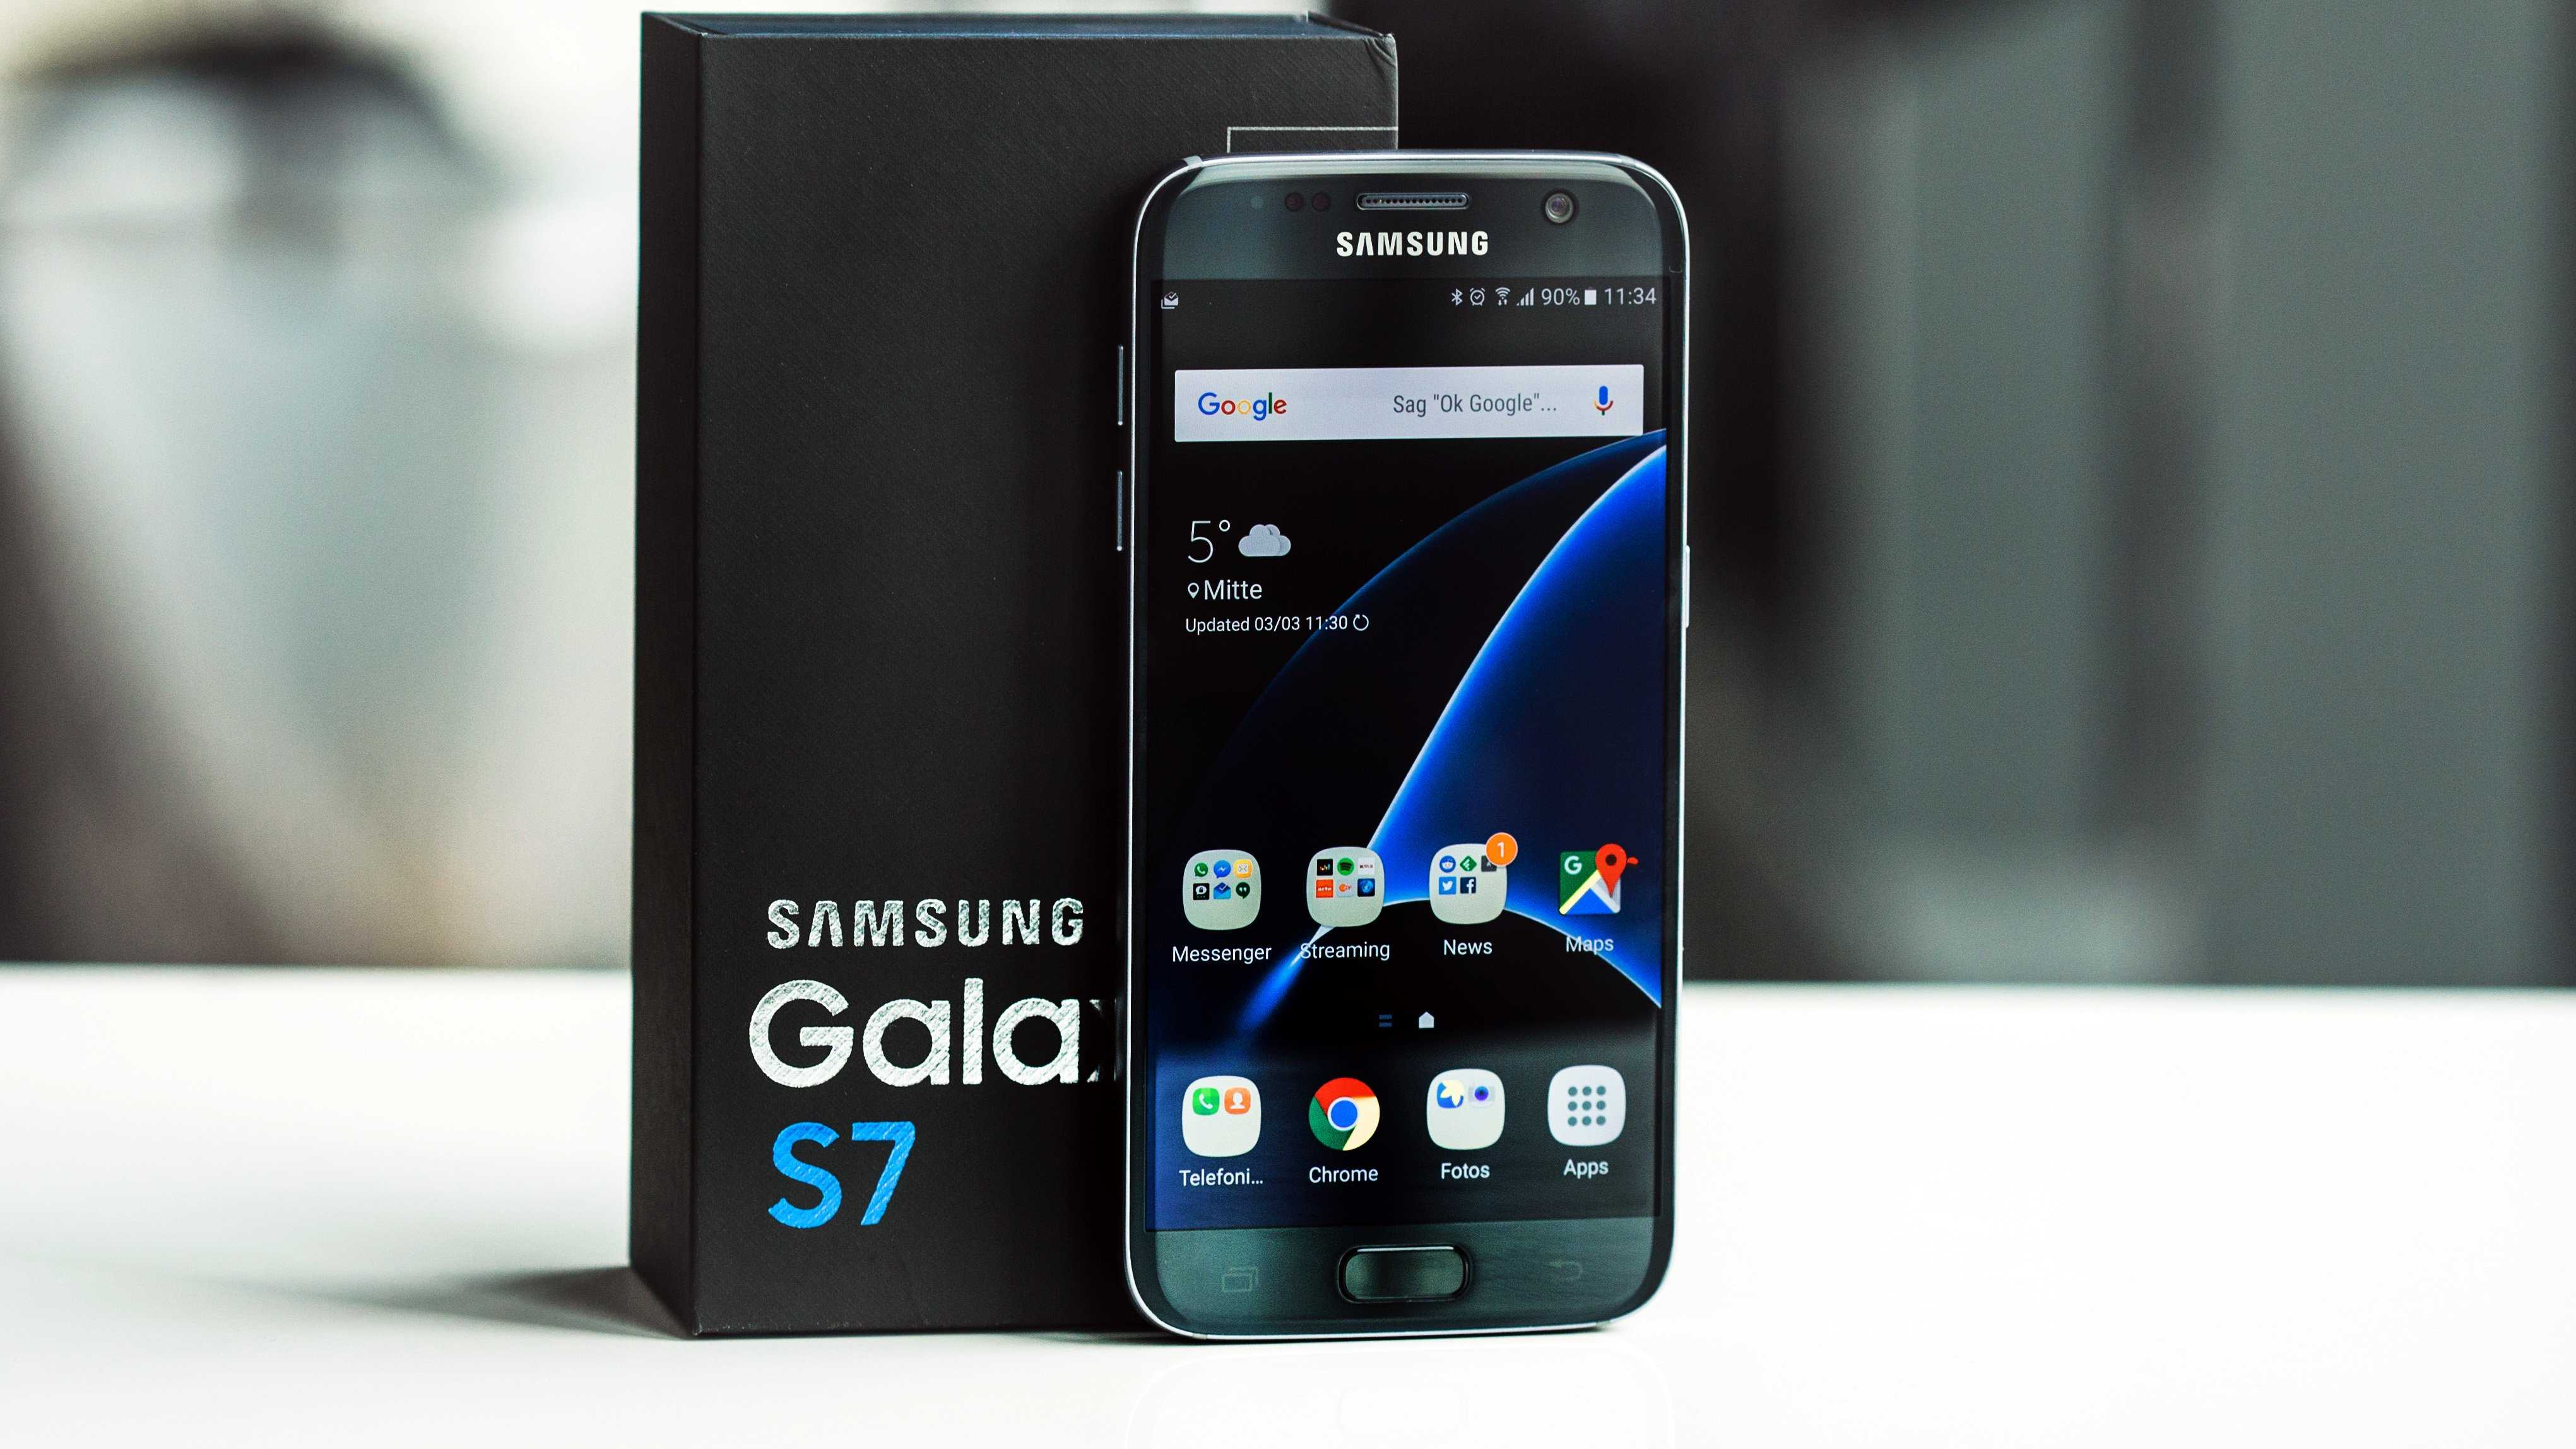 focus on making more of the samsung galaxy s7 and the galaxy s7 edge